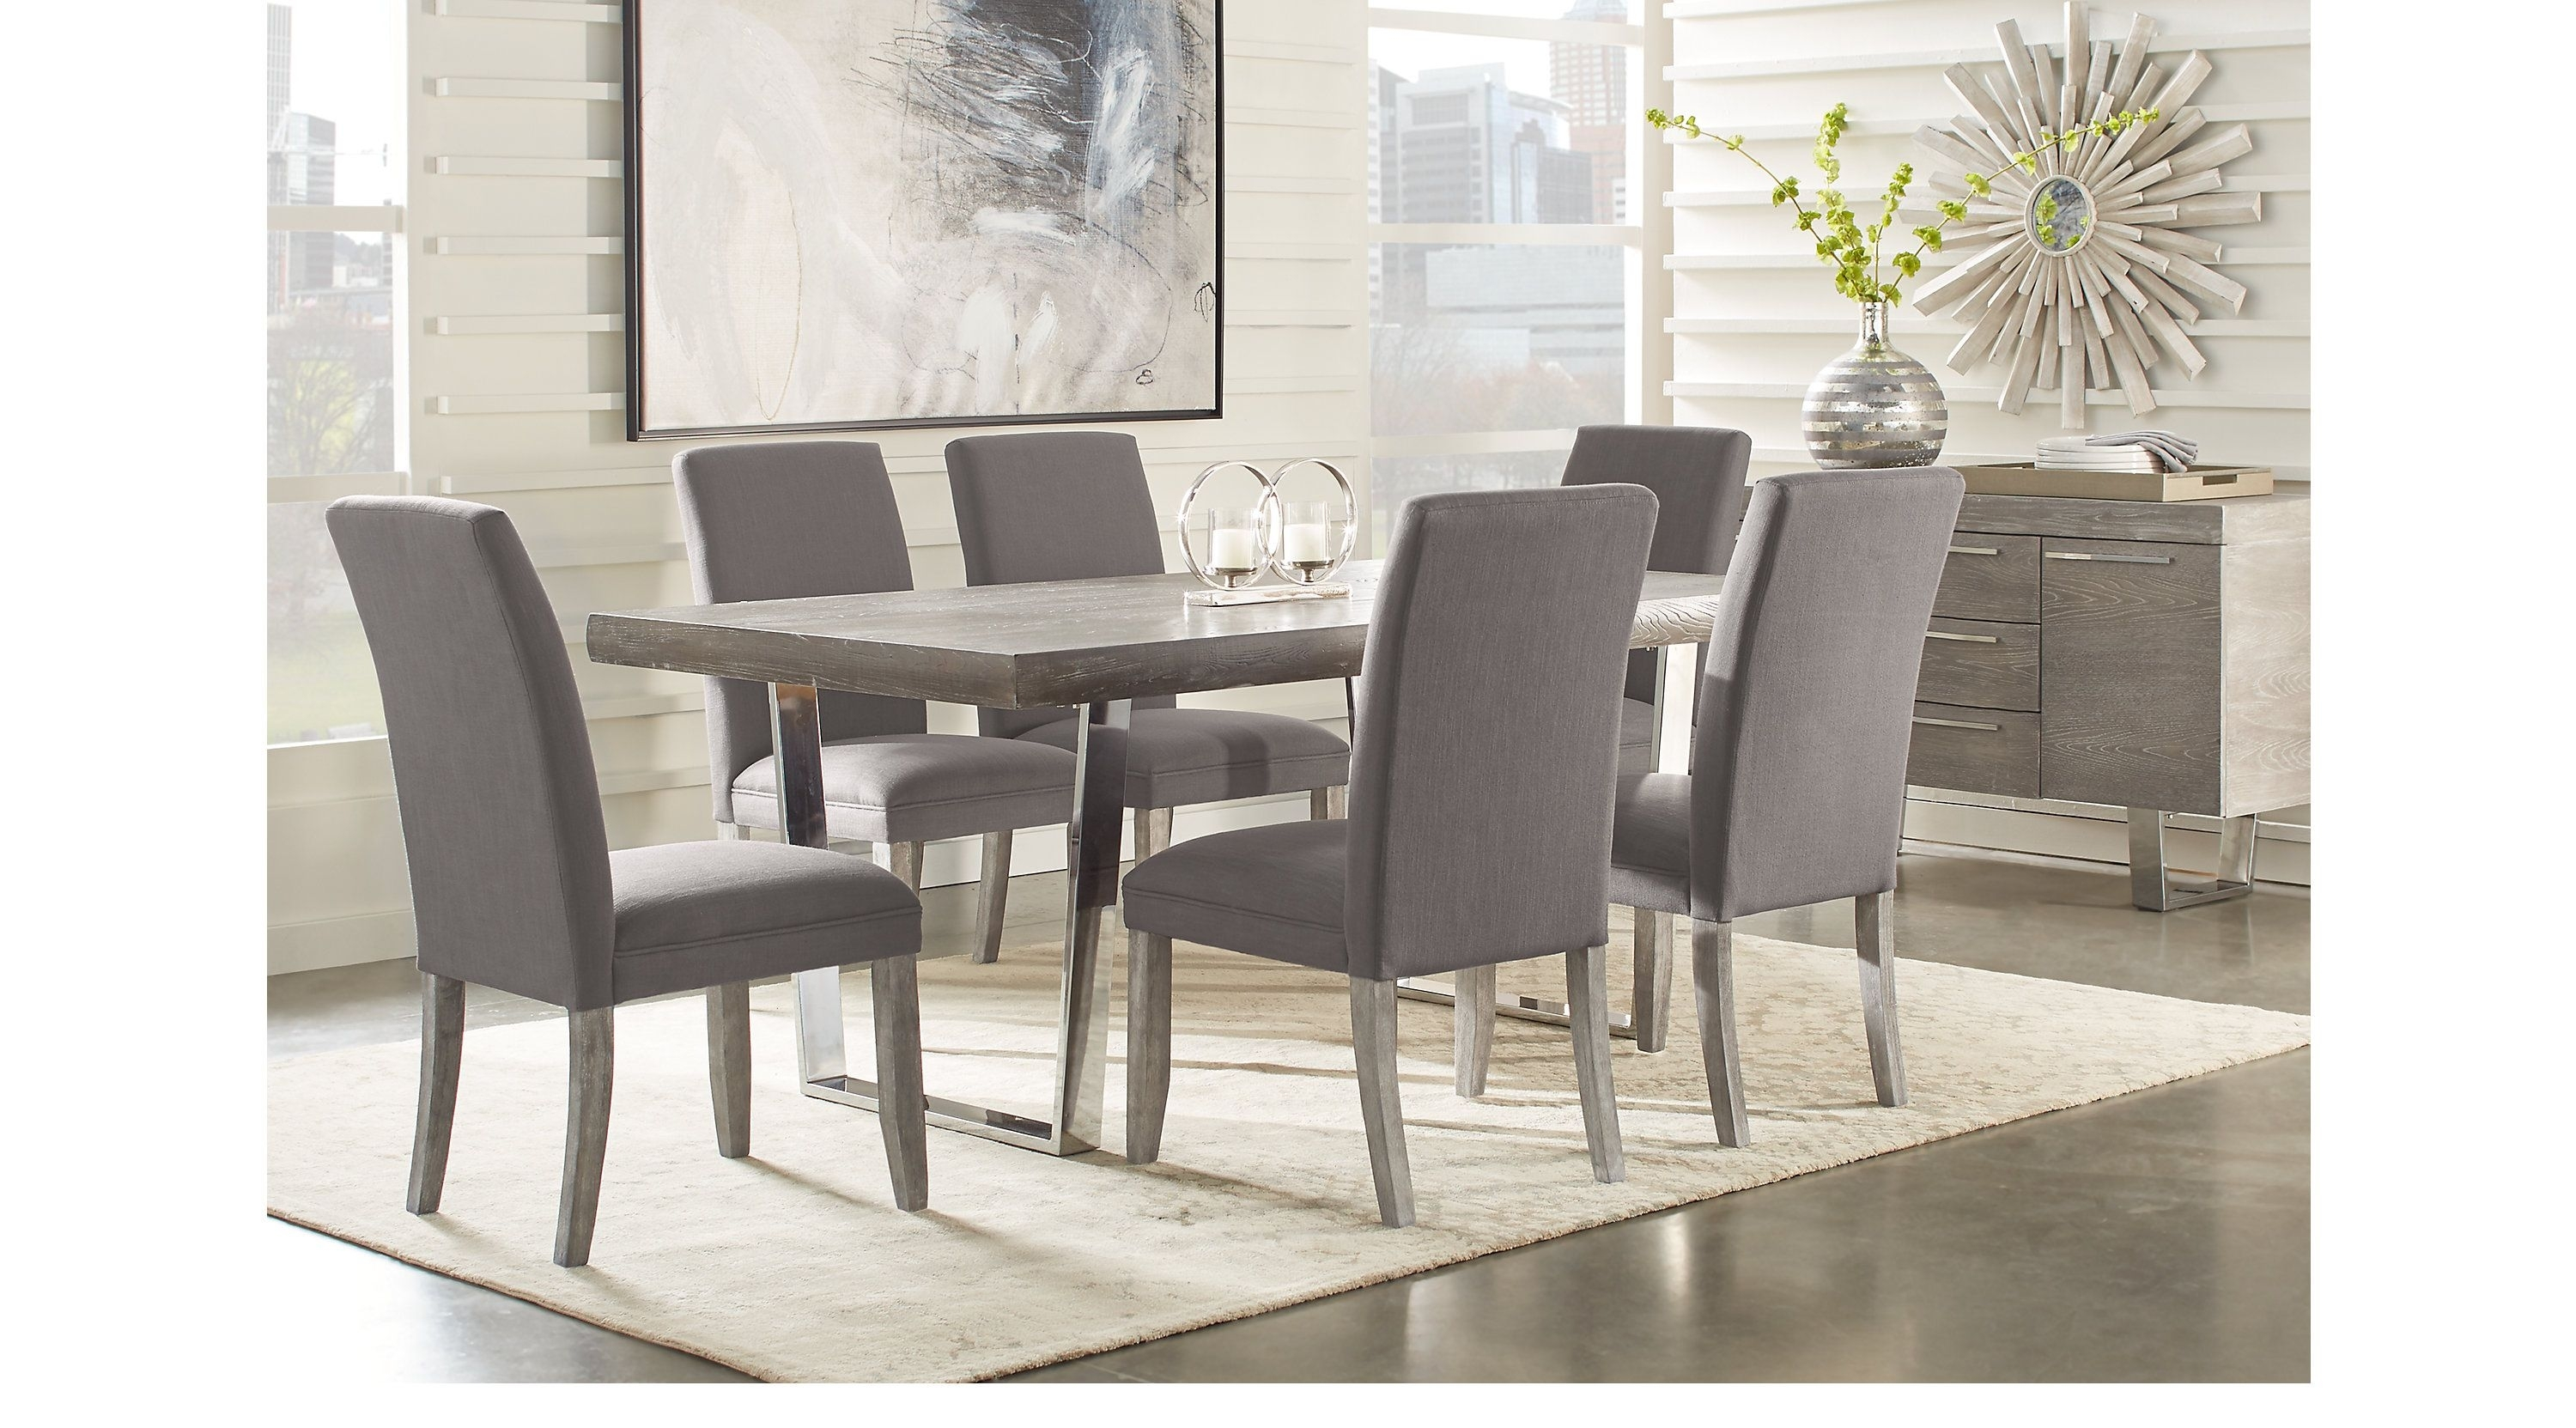 Besteneer Rectangular Dining Room Table Dark Gray – Signat Regarding Latest Jaxon Grey 5 Piece Extension Counter Sets With Wood Stools (Image 3 of 20)